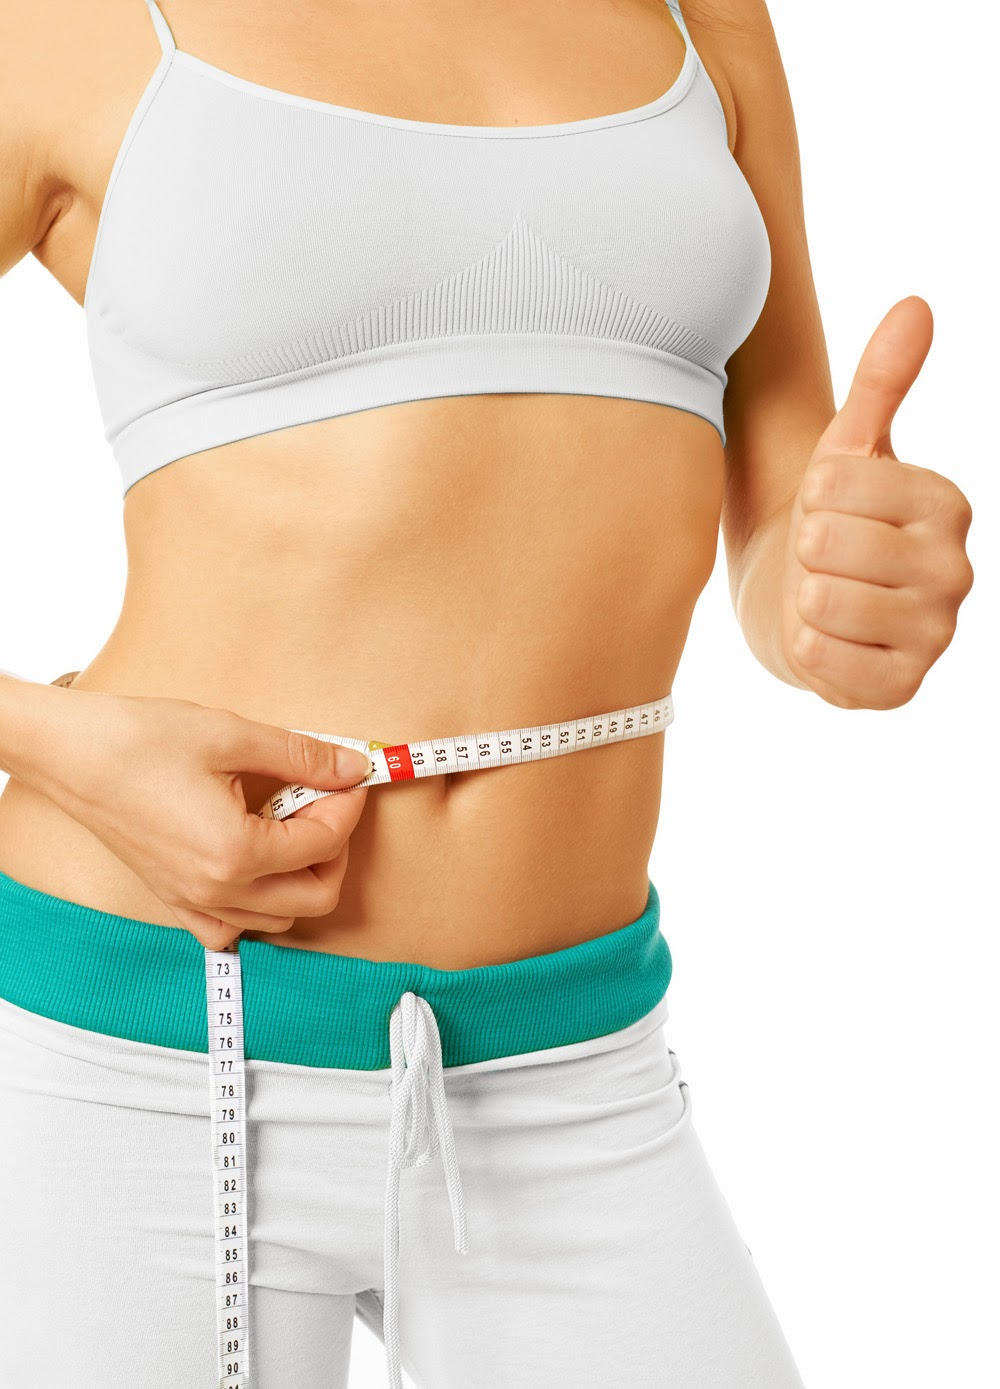 How to Create Weight Loss Products to Sell Online